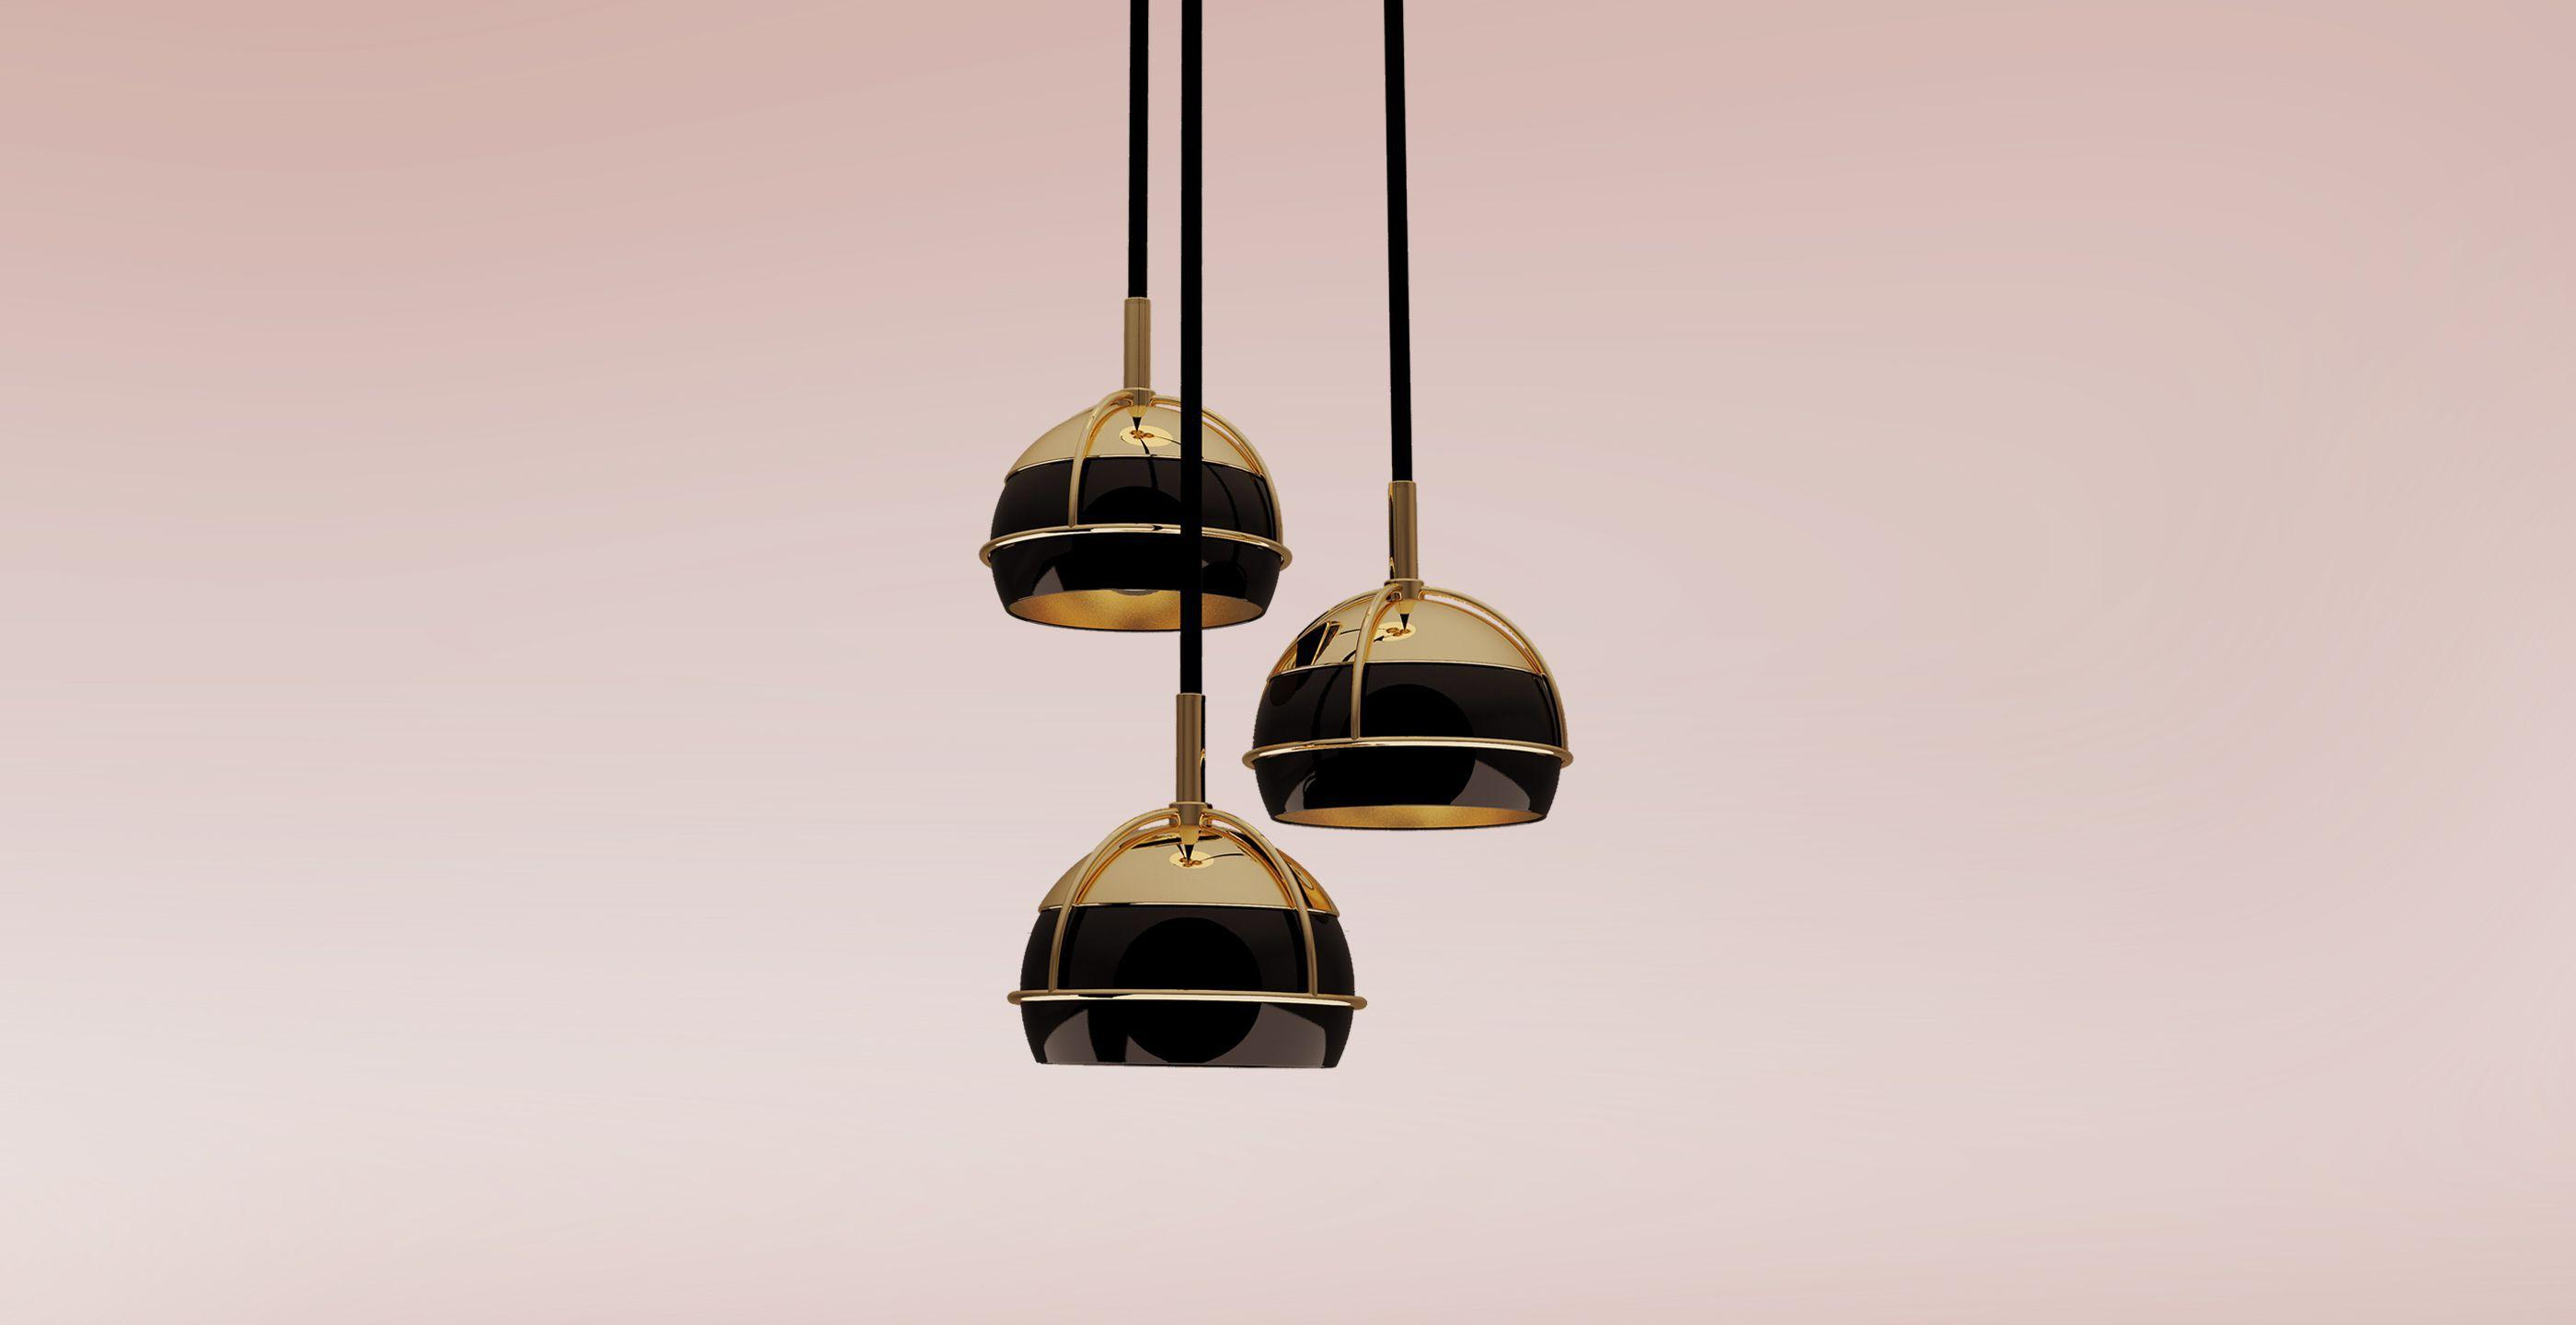 Black Widow III Pendant Lamp